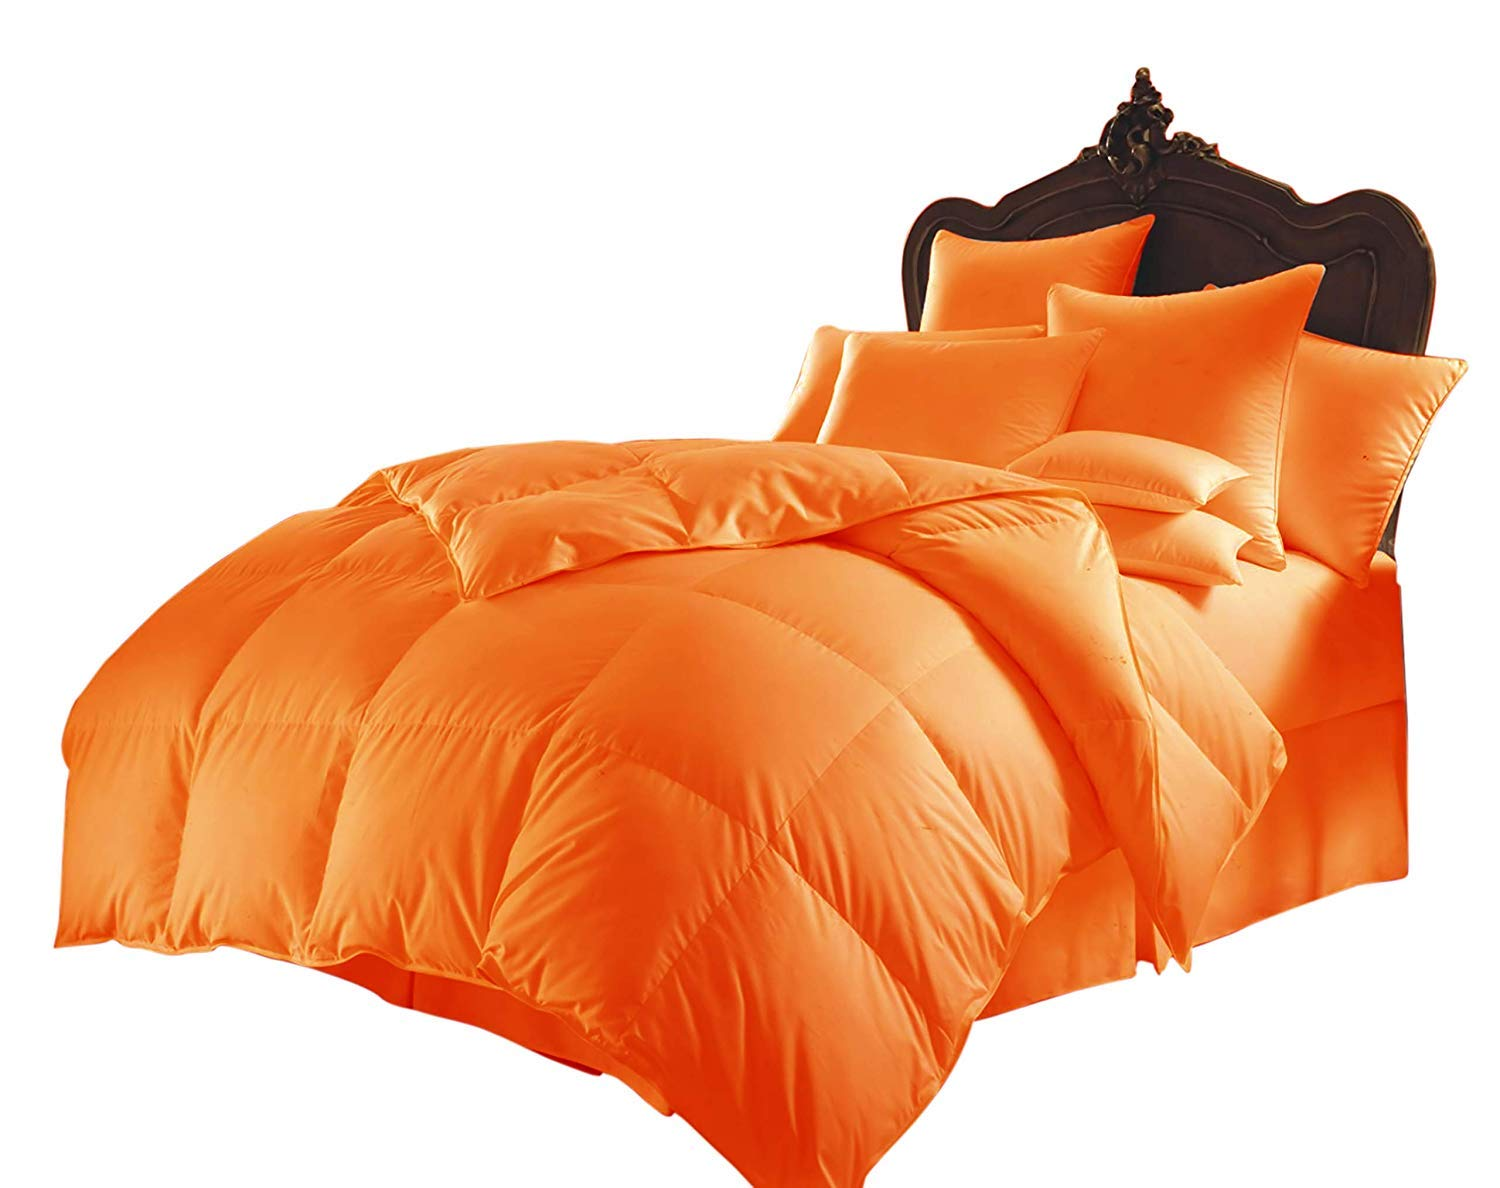 All Season Luxurious 1000 Series,Luxury Goose Down Alternative Comforter, Oversized-King - Quilt 8 Pc Comforter -100% Egyptian Cotton Comforter, Hotel Quality 400 GSM,Orange, (90''x120'') by SOFTBED COLLECTION